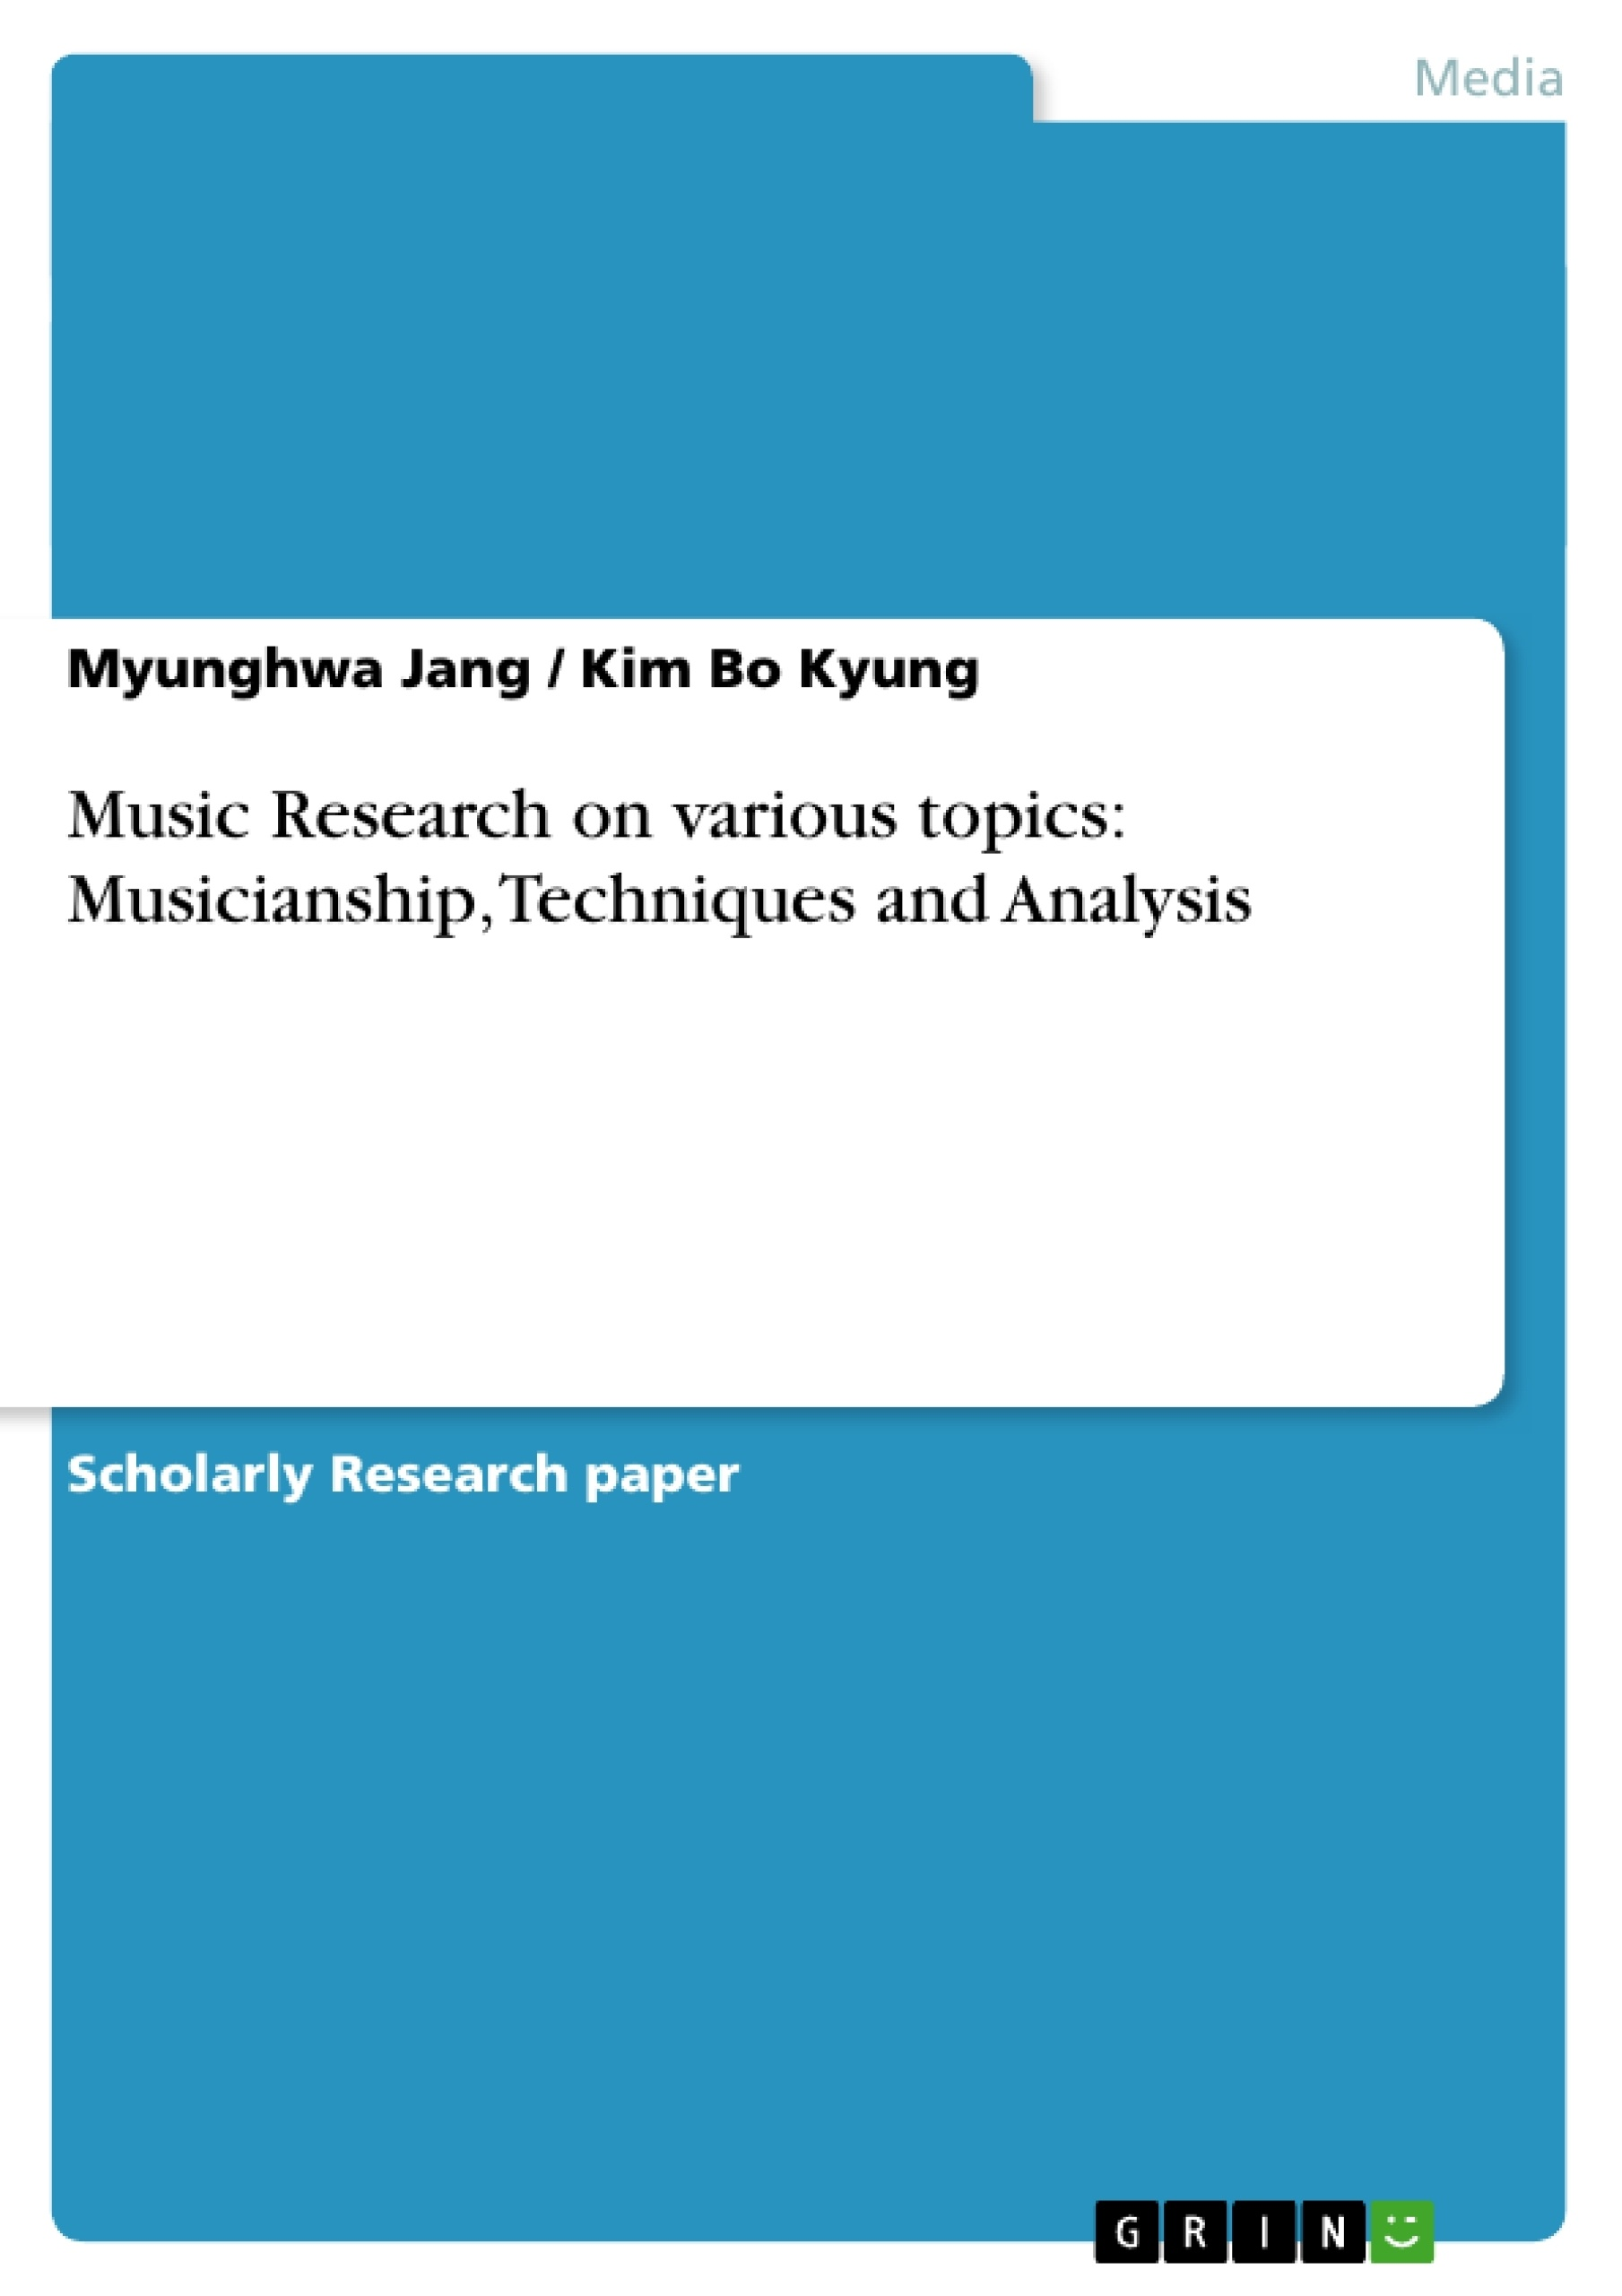 014 Research Paper Topics Music 208216 0 Imposing Education Classical Industry Full